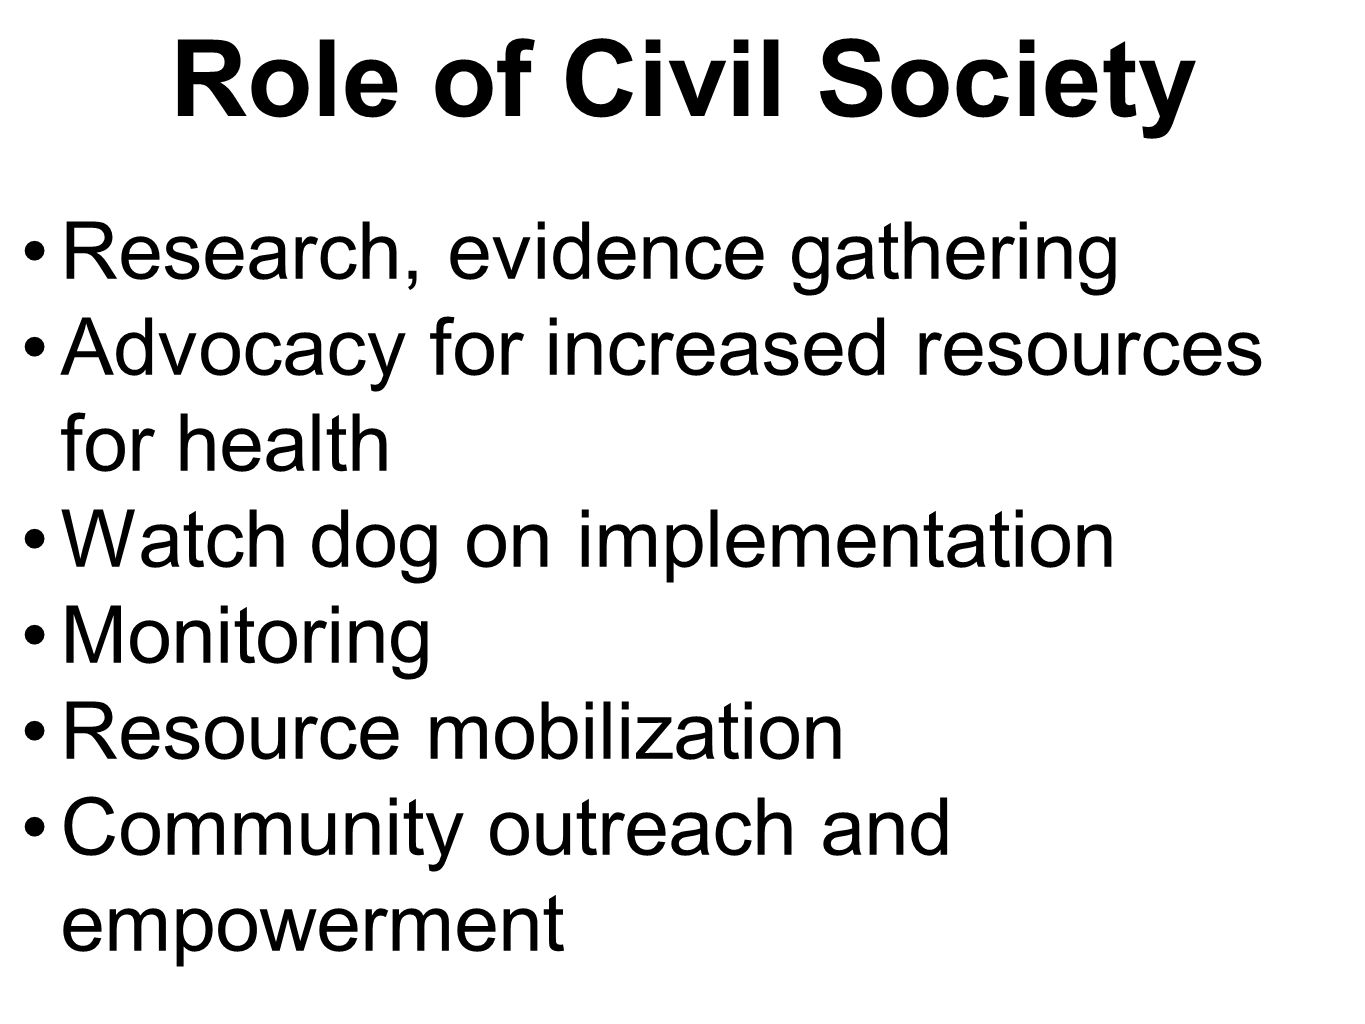 Role of Civil Society Research, evidence gathering Advocacy for increased resources for health Watch dog on implementation Monitoring Resource mobilization Community outreach and empowerment